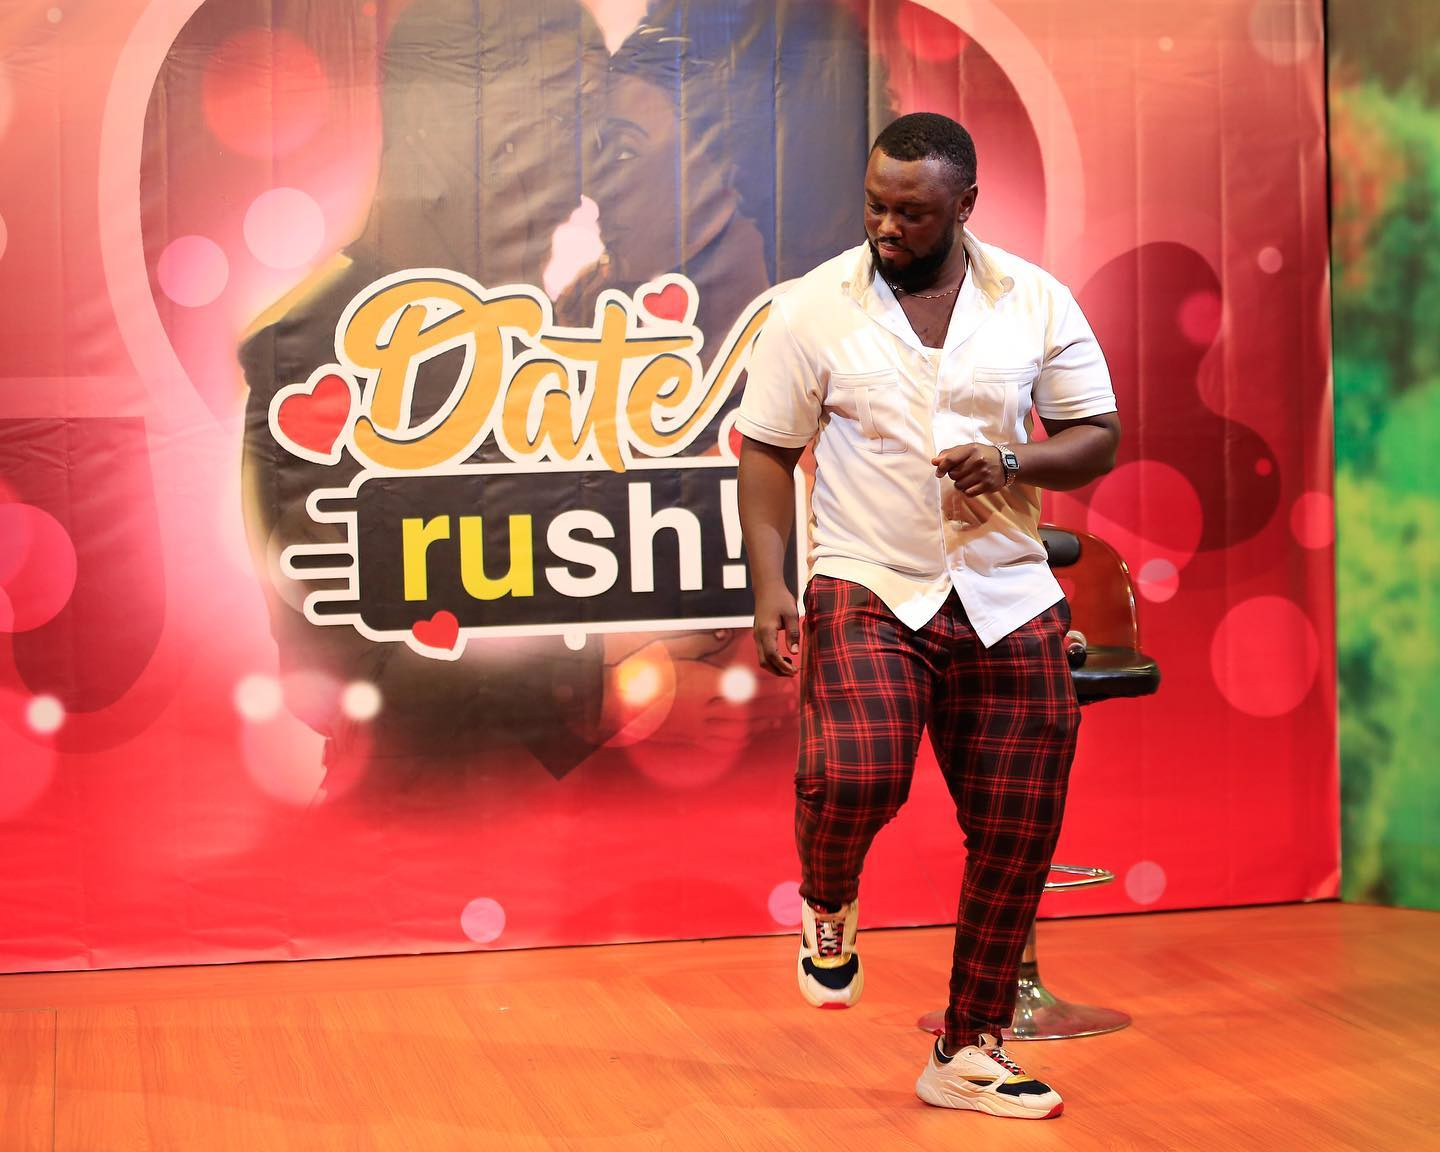 [Photos] Date Rush Auditions: See if your partner is searching for a date